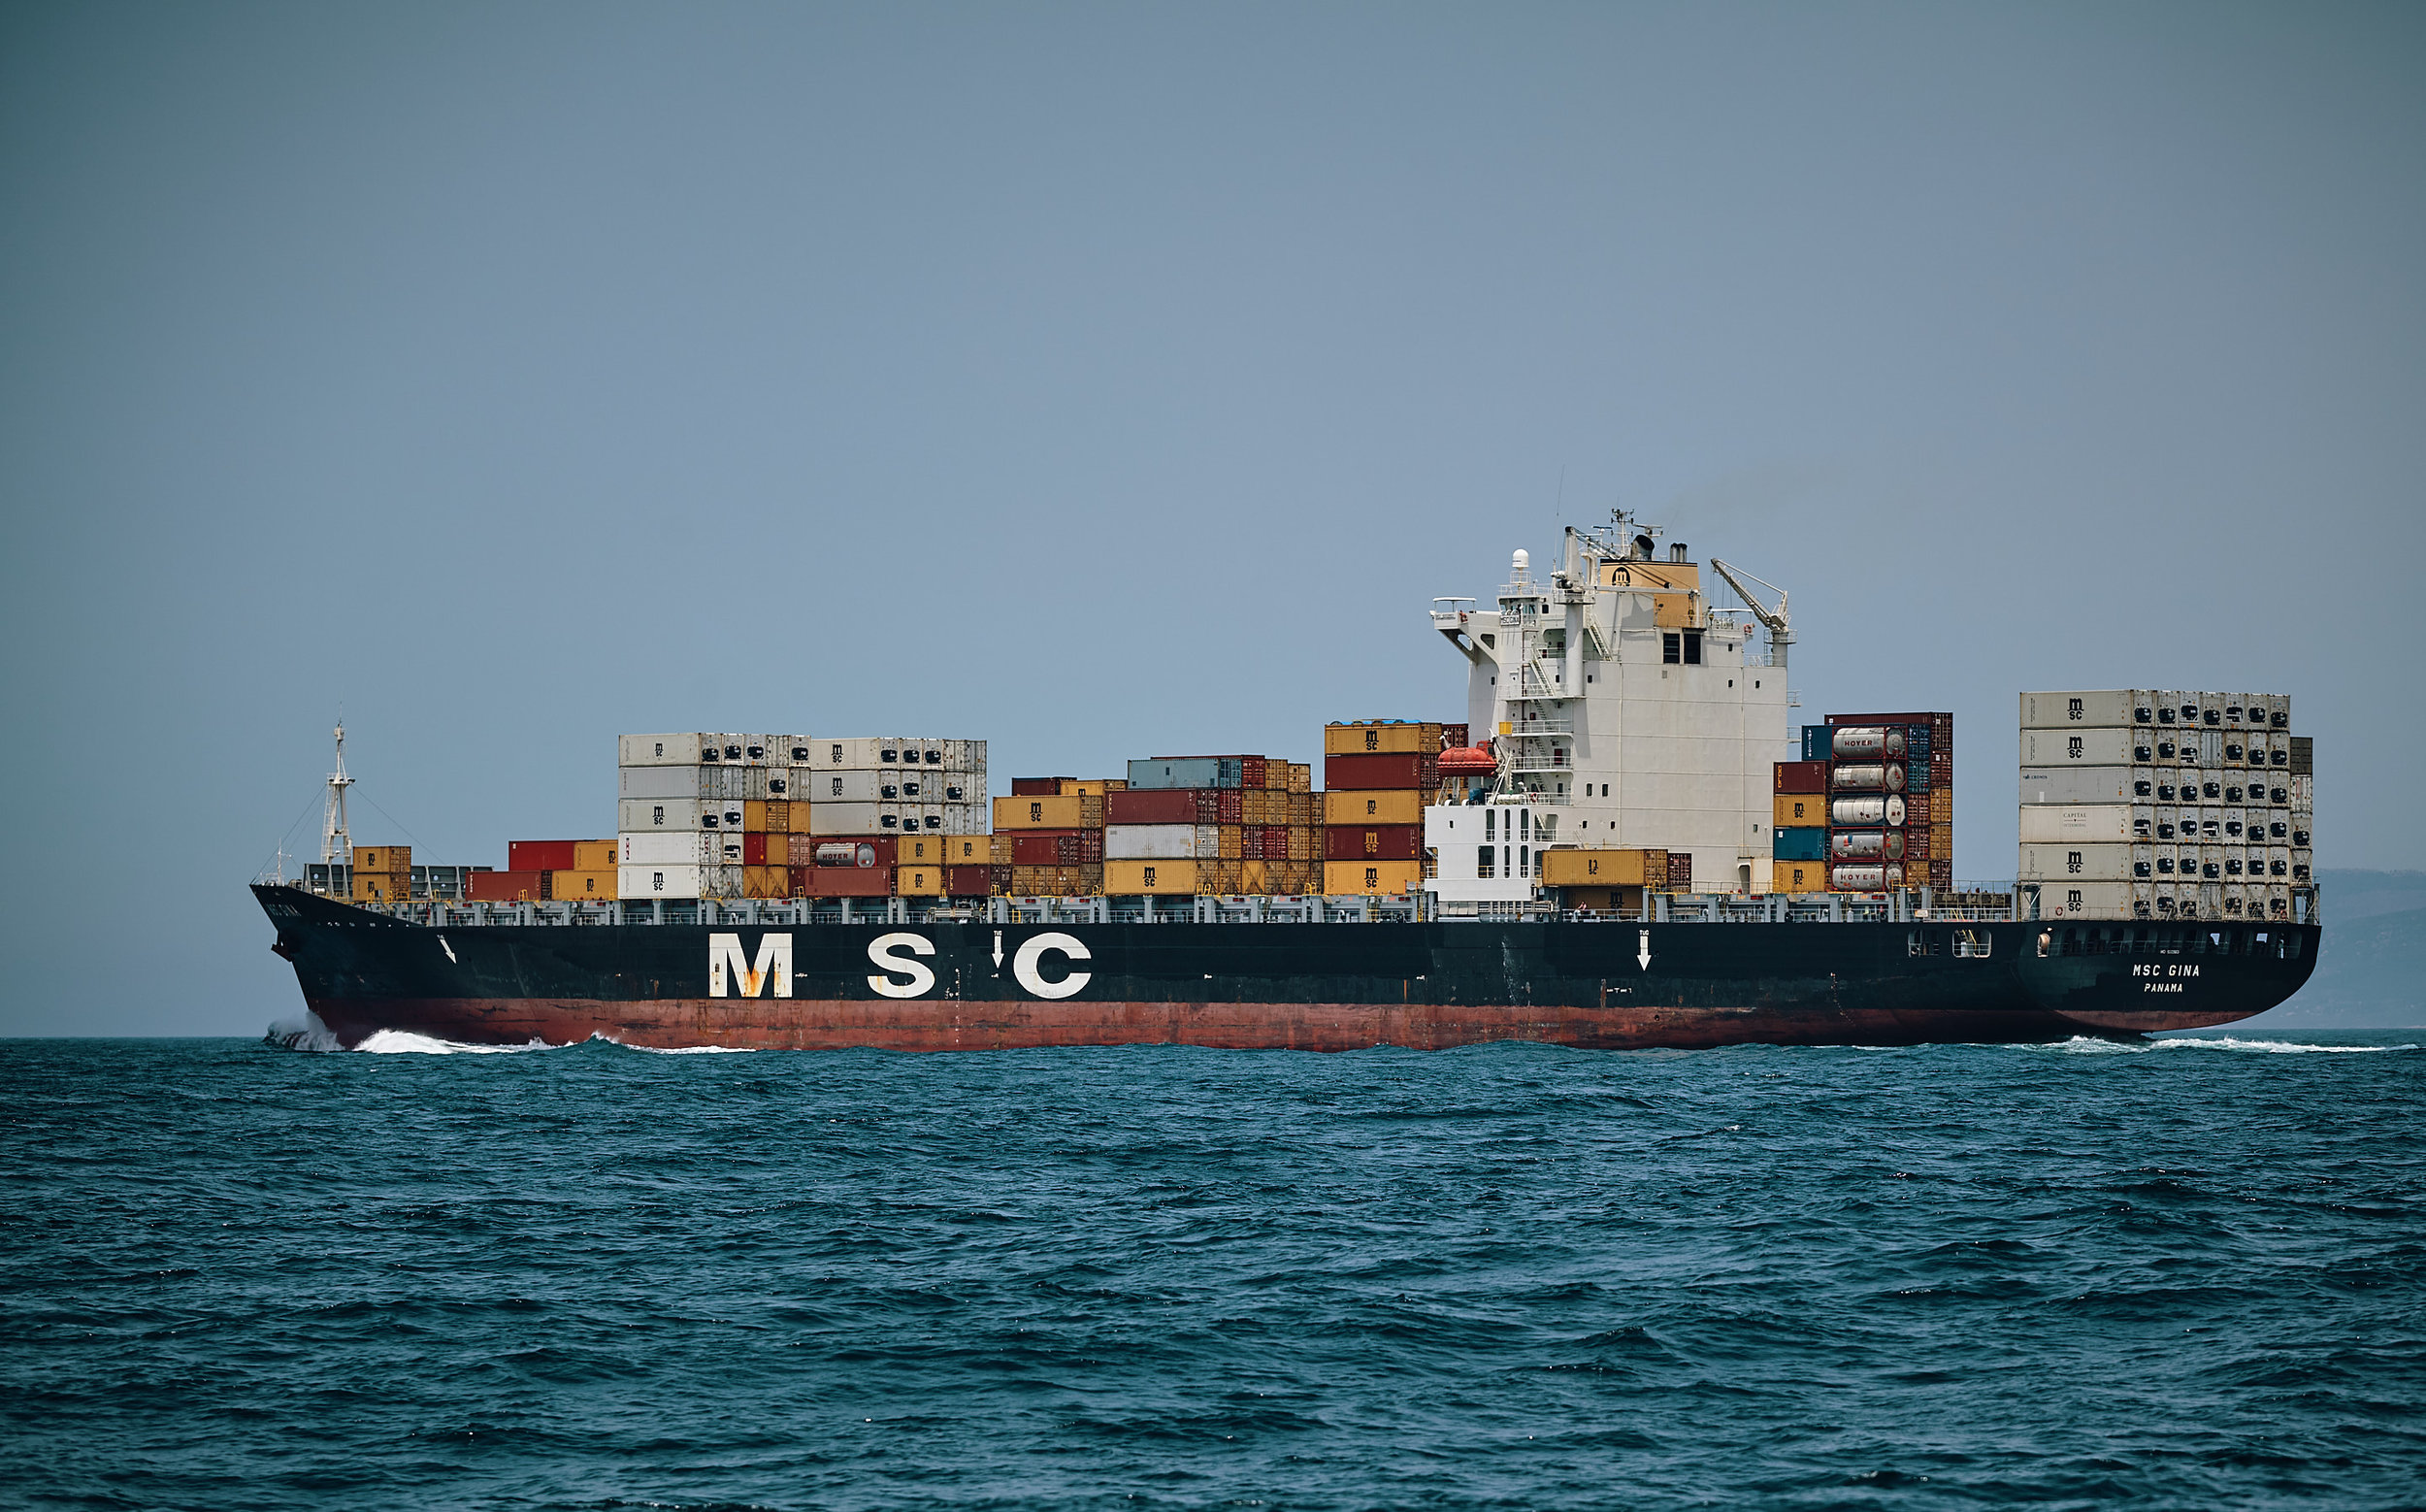 Marine Cargo Insurance     If you are an importer, exporter, or both, you know exactly the risks that you face in your business. Transfer to us those risks and we'll take care of them for you.